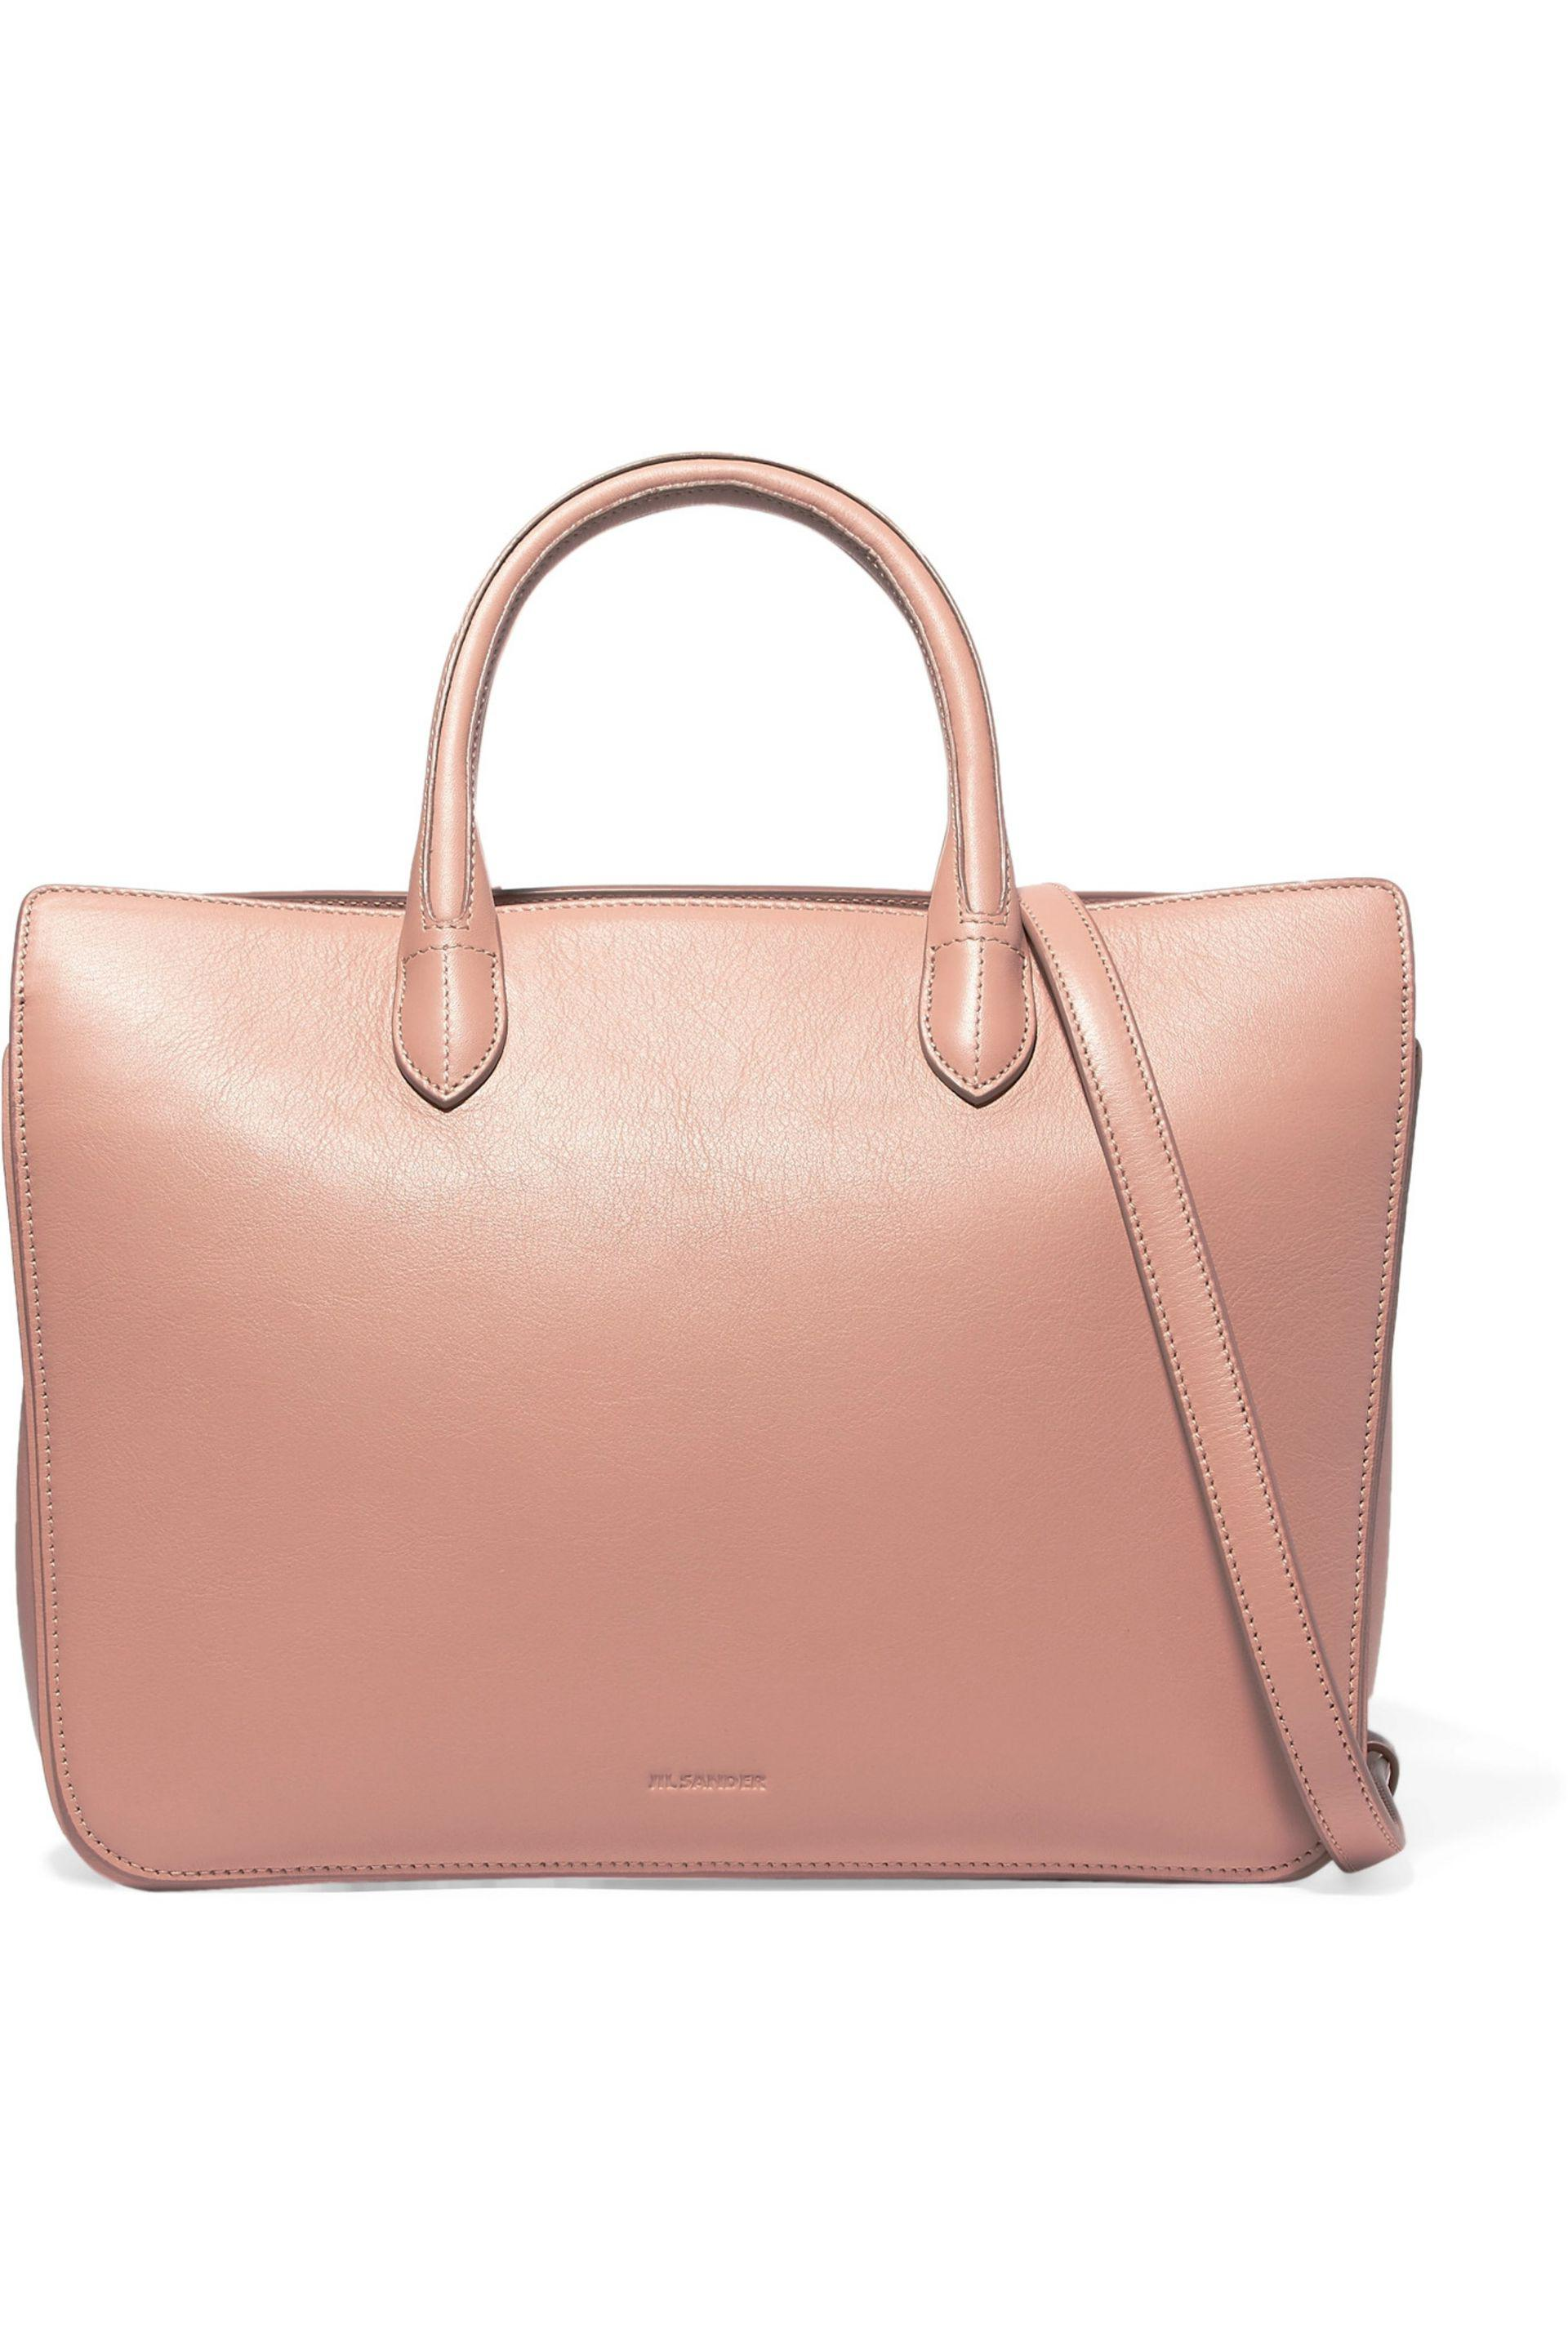 Jil Sander Oversized canvas and leather tote GACczkW